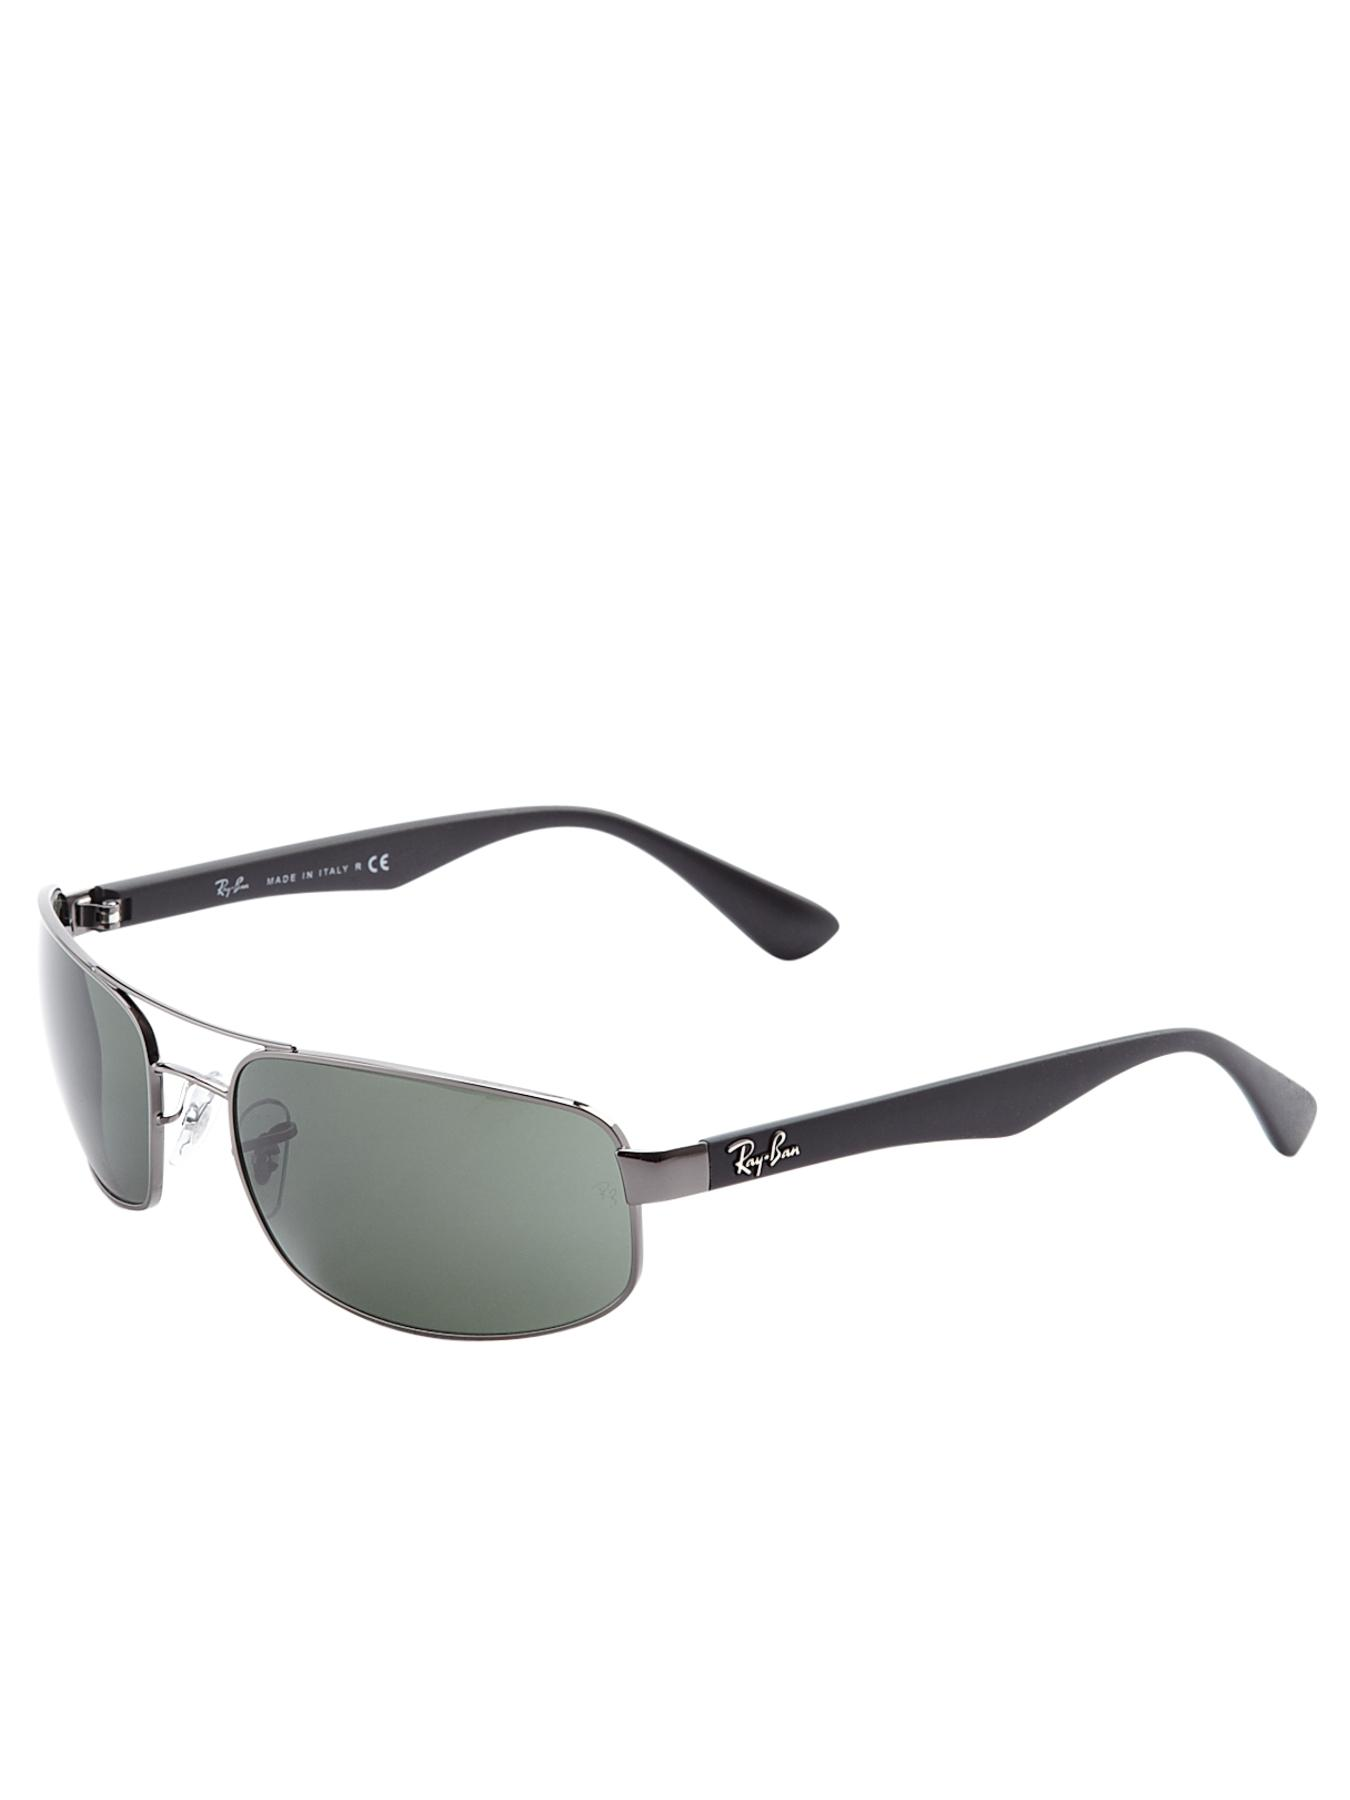 ray ban outlet zone  ray ban sunglasses